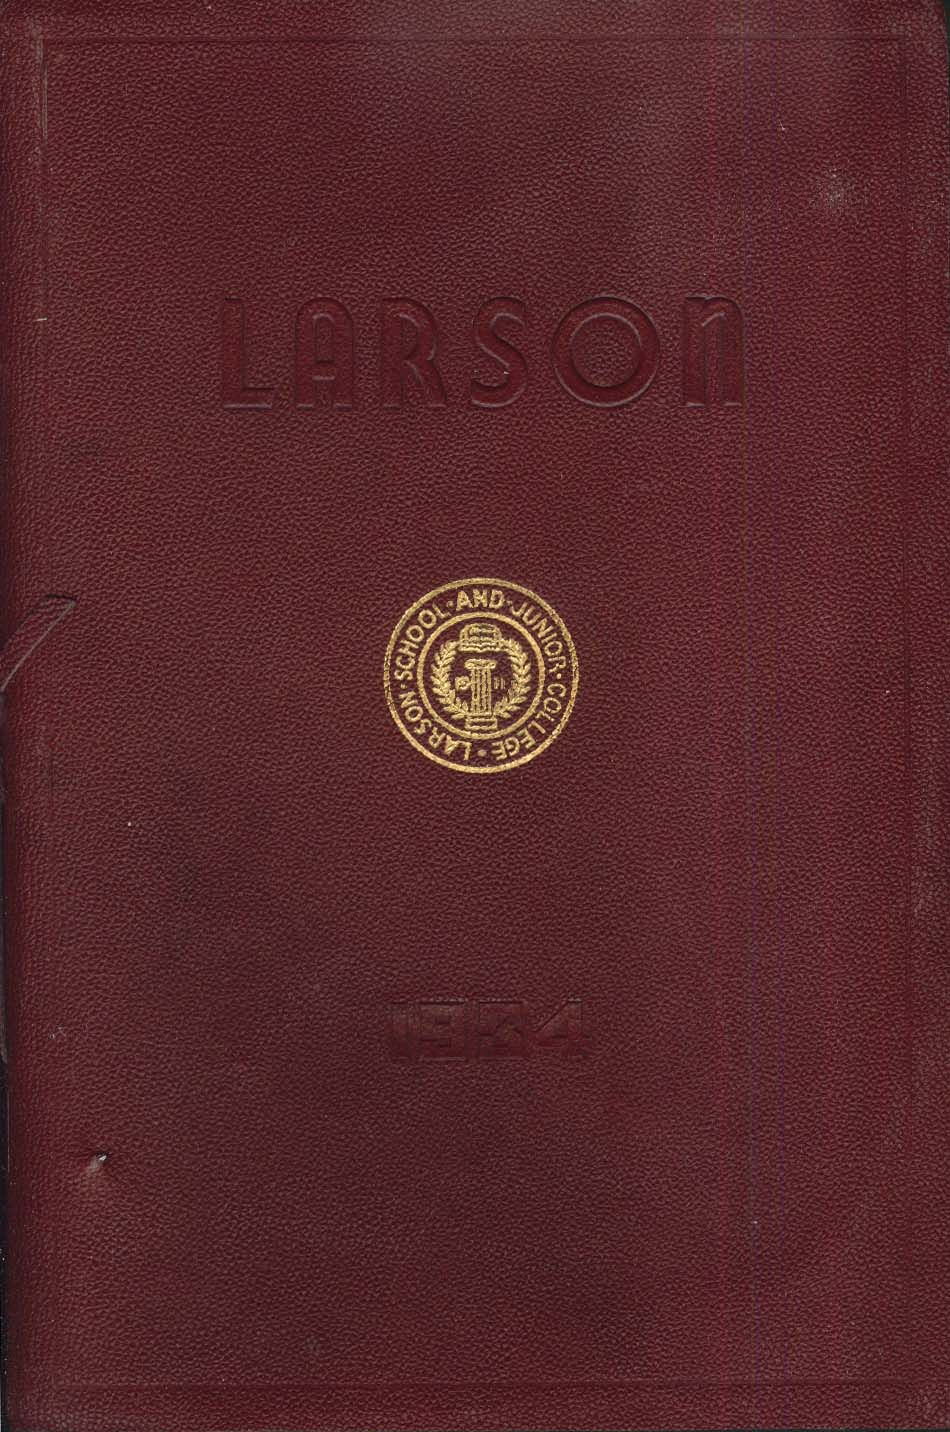 Image for Larson School & Junior College New Haven Connecticut CT 1934 Yearbook